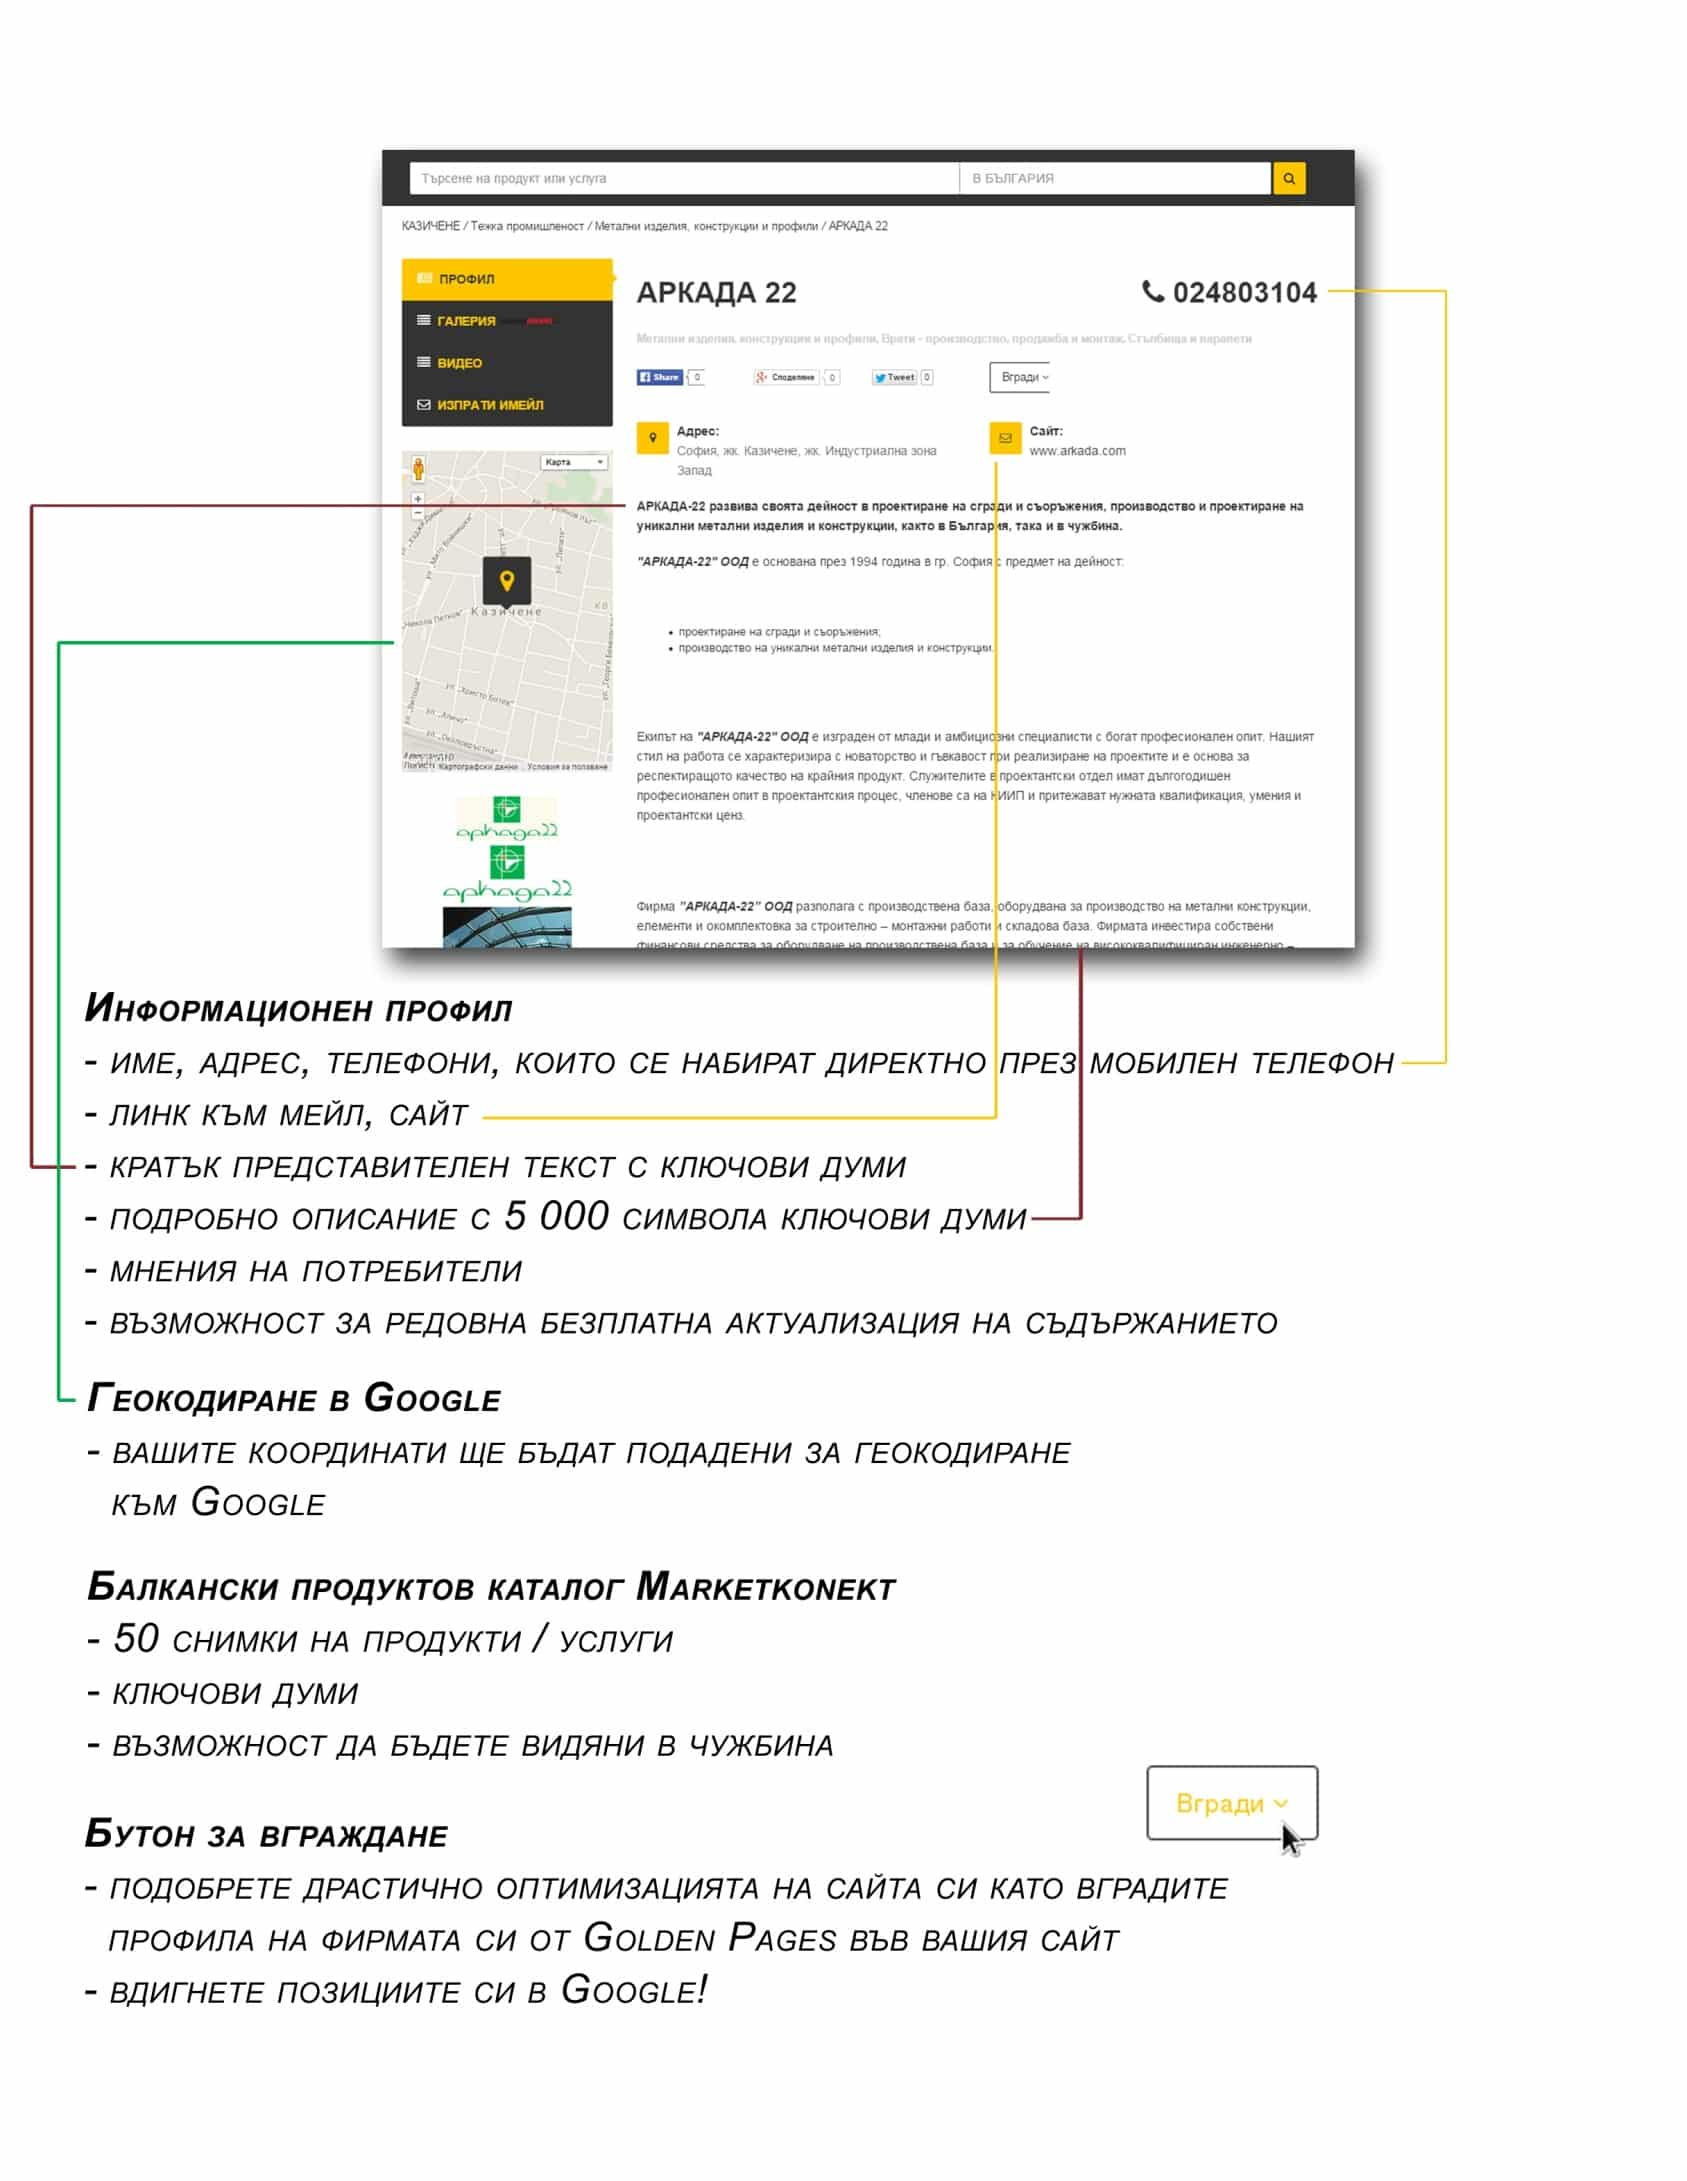 Host.bg и Golden Pages